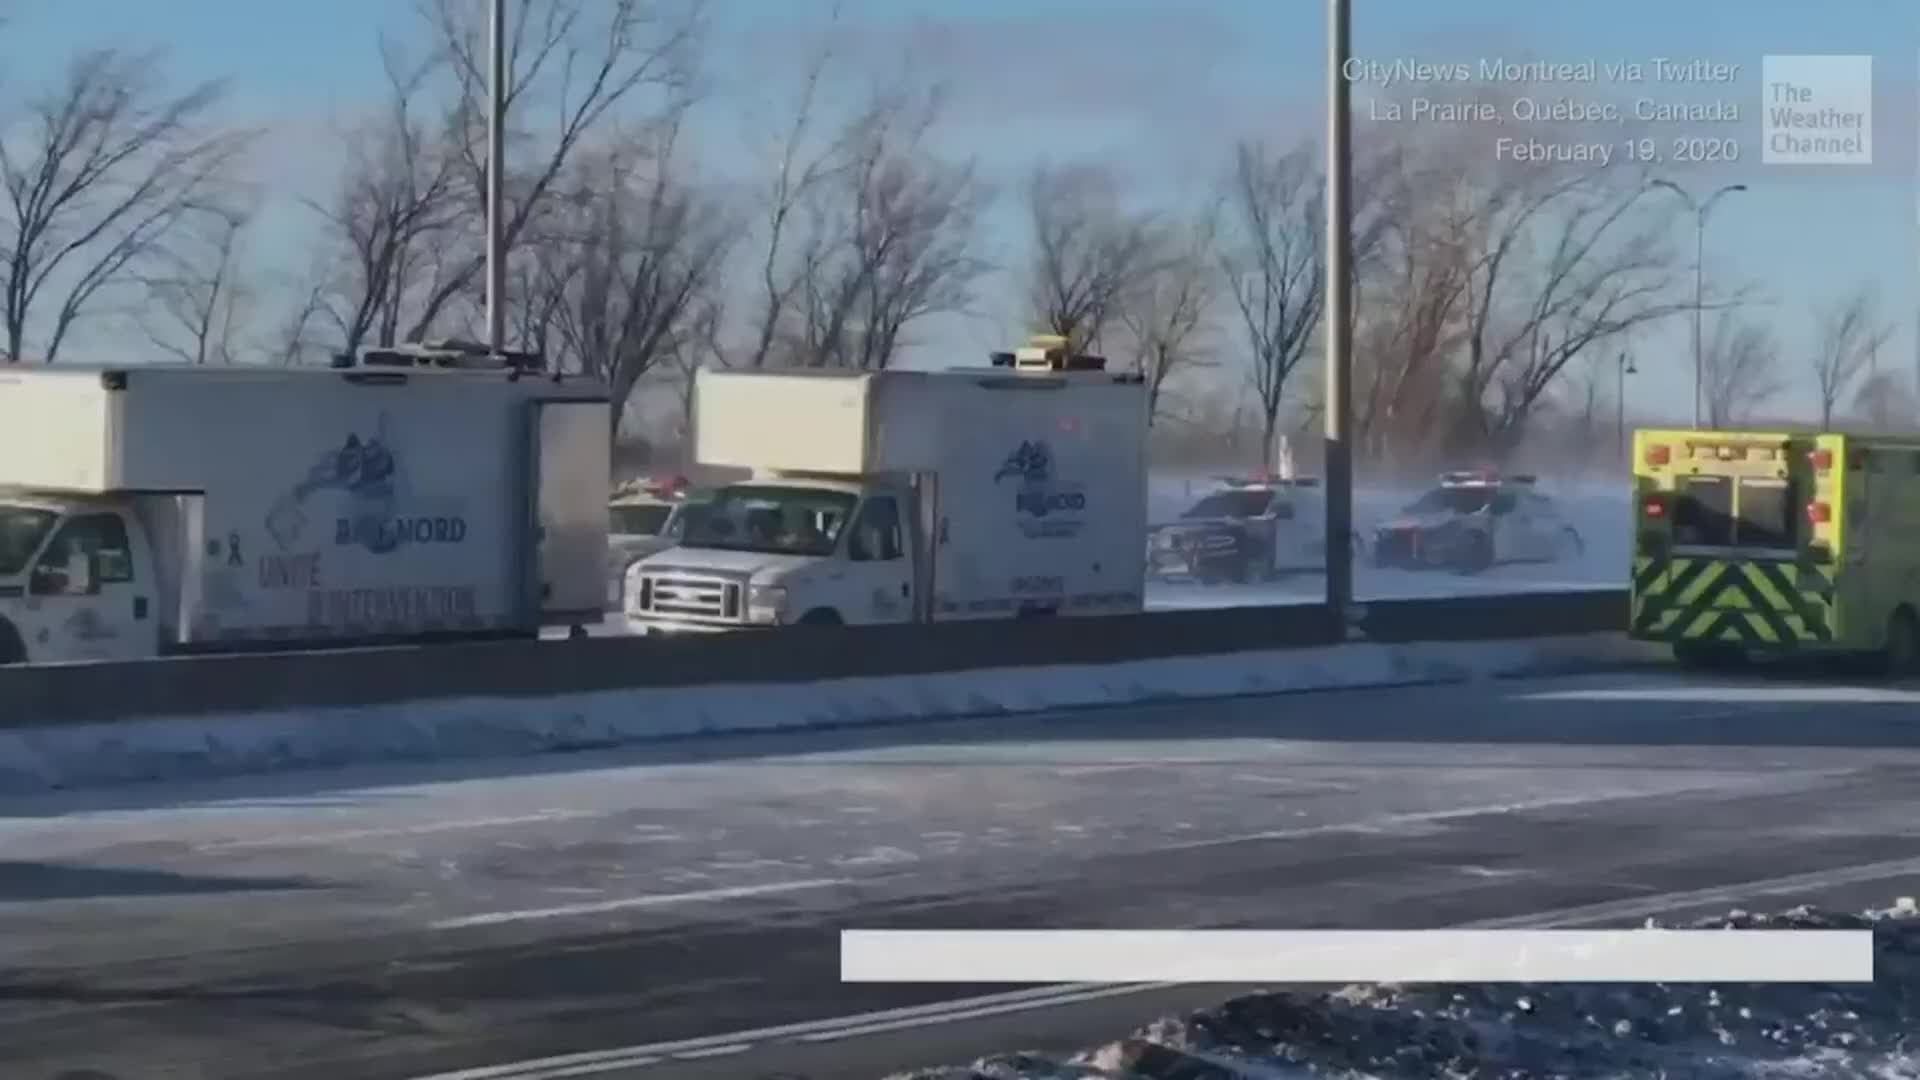 Meteorologist Danielle Banks says almost 200 vehicles were caught in a massive pileup in Montreal. At least 2 people have died and more than 65 were injured in Wednesday afternoon's accident.